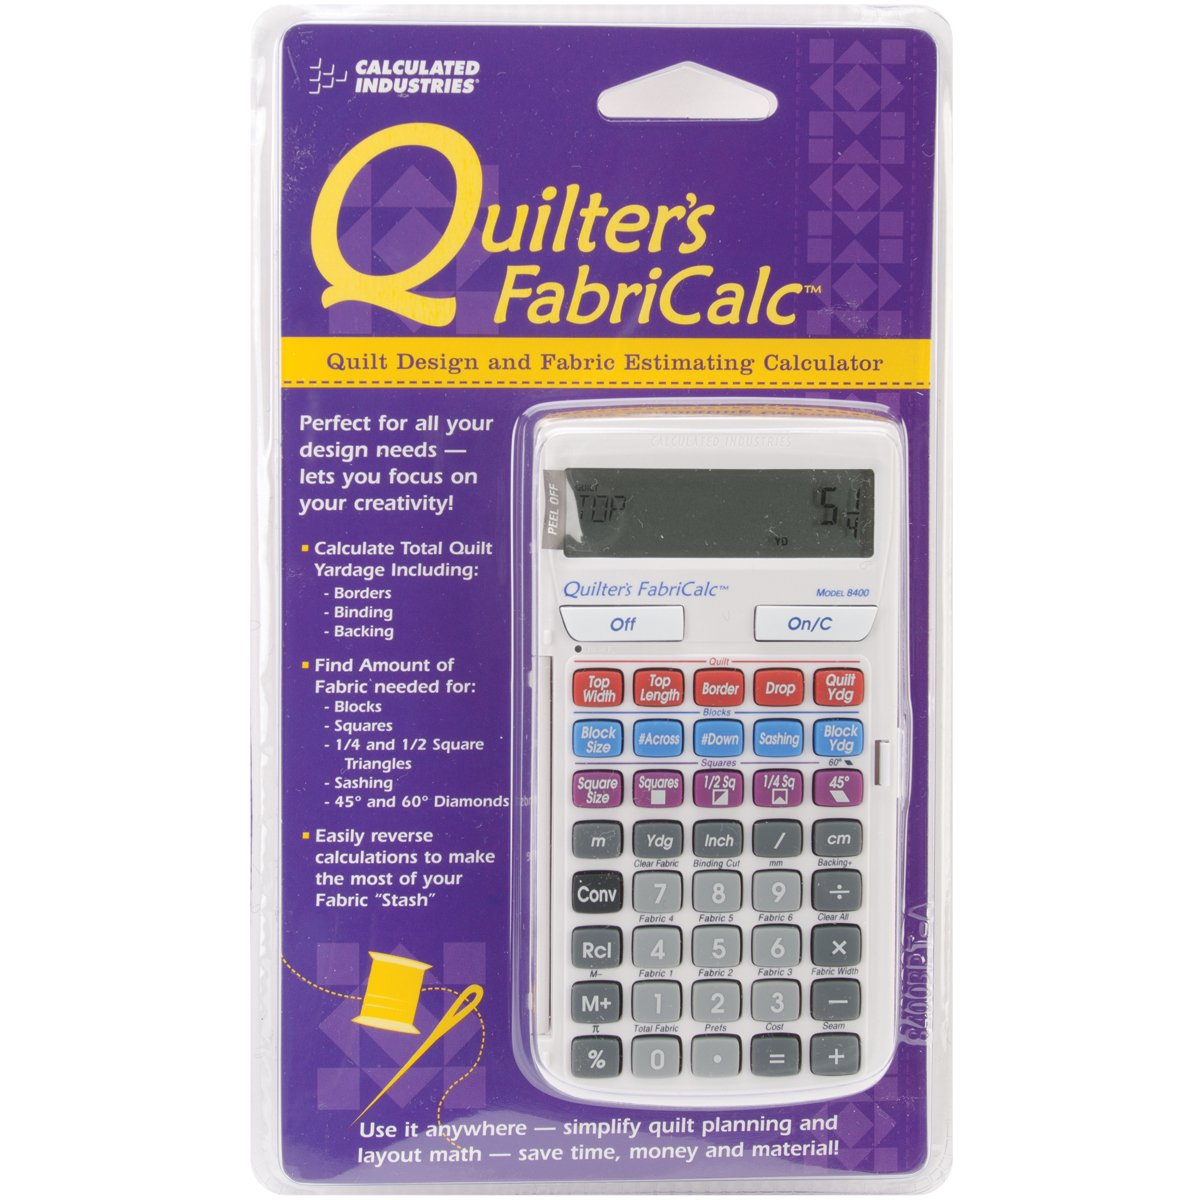 Amazon.com: Calculated Industries Quilter's FabriCalc Quilt Design ... : fabric calculator for quilts - Adamdwight.com